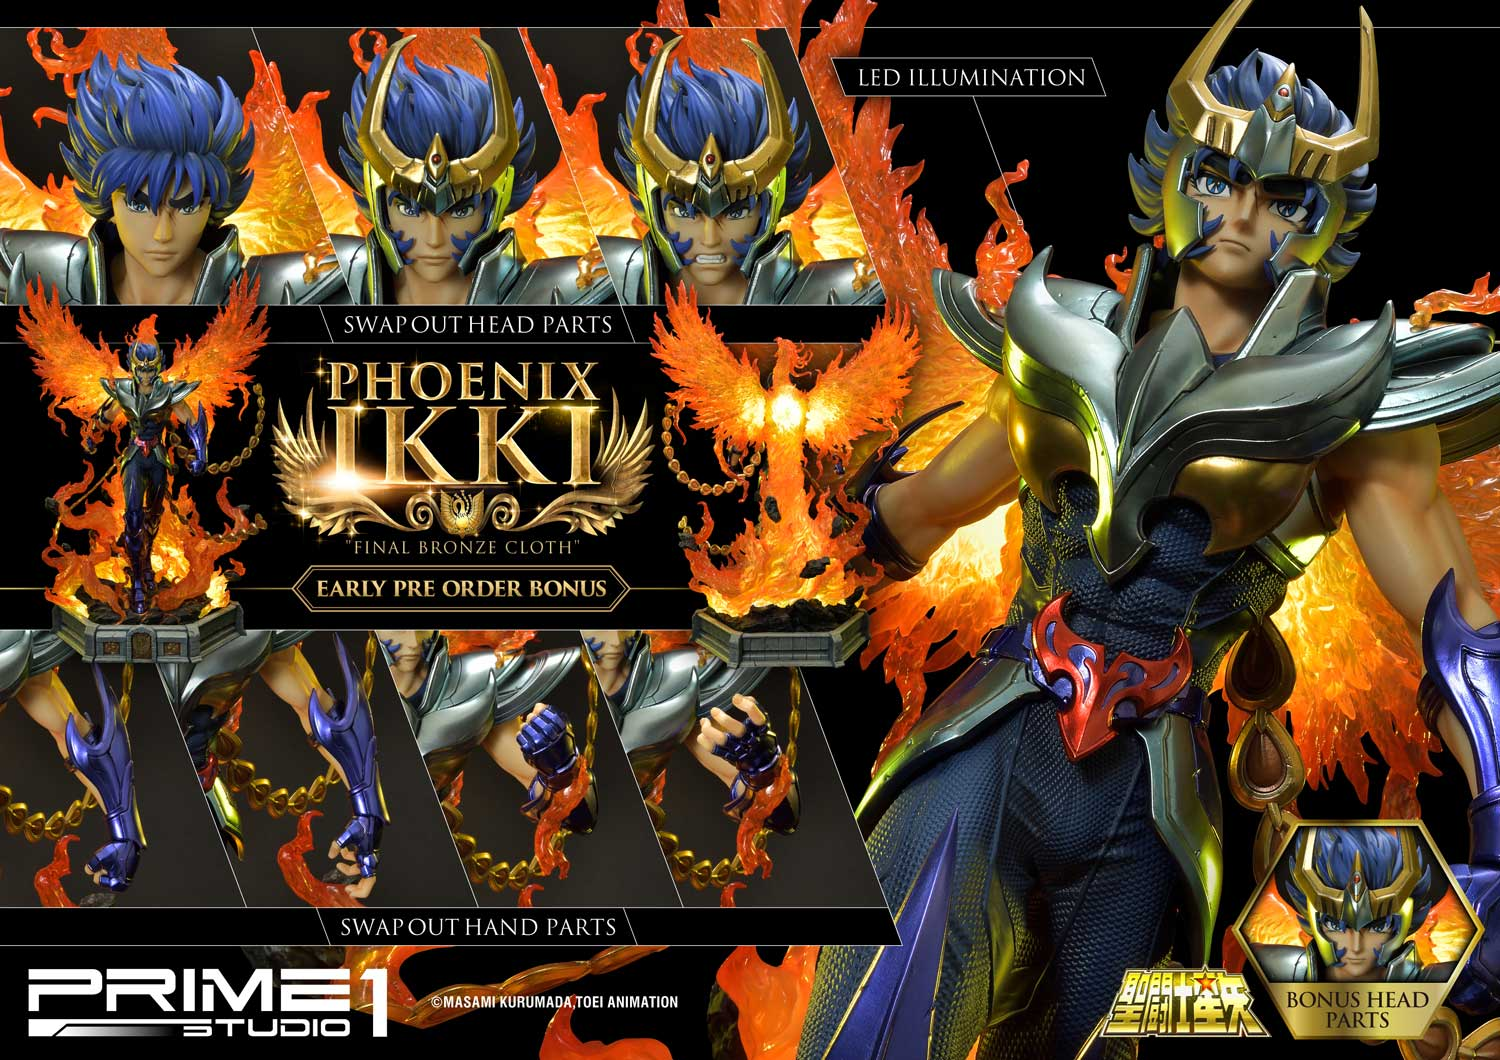 Prime1studio p1s pmkz-01 1 / 4 Saint fighter star arrow Phoenix immortal